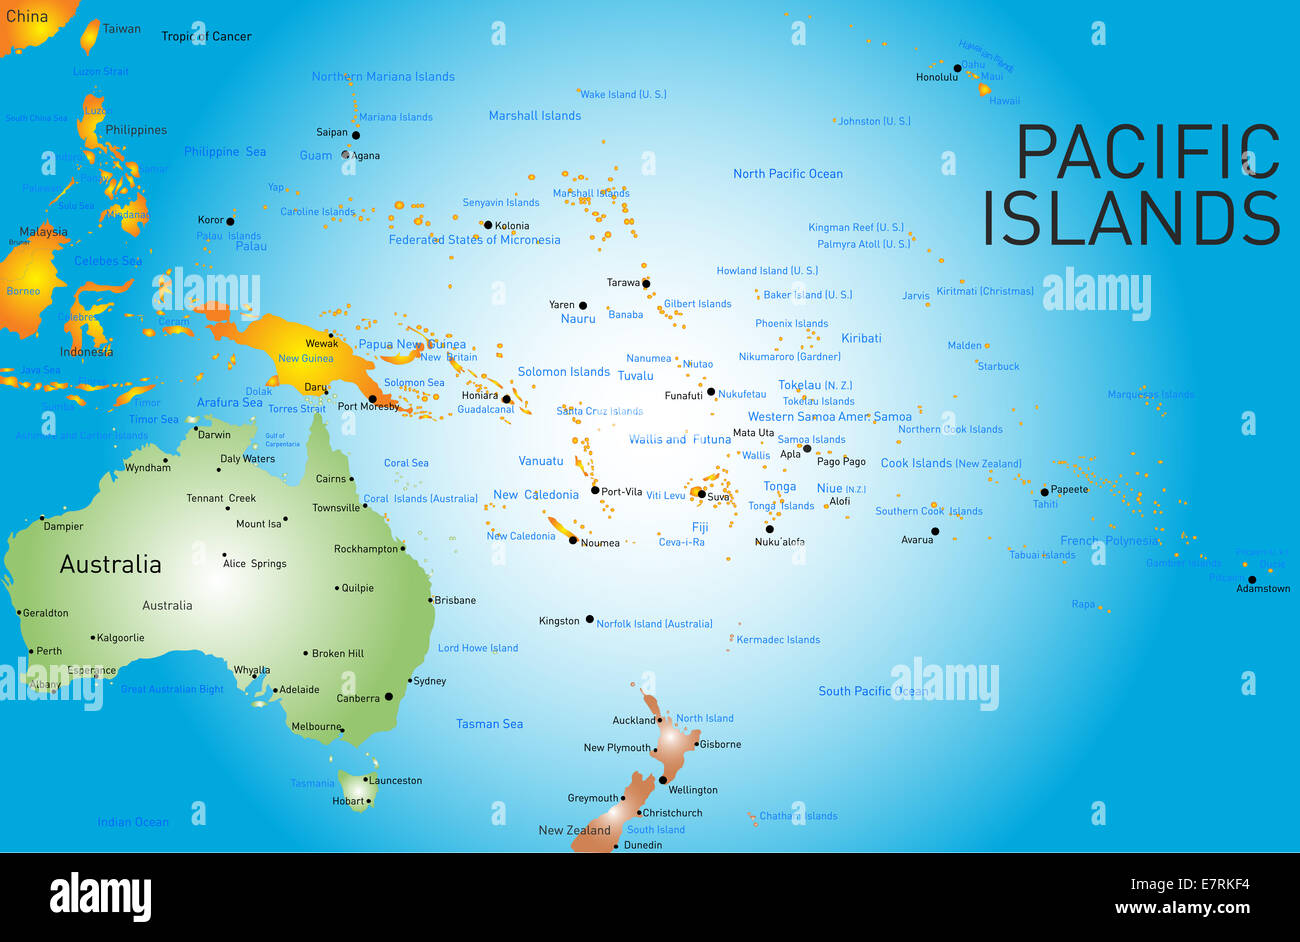 Pacific Islands Map pacific islands map Stock Photo: 73664280   Alamy Pacific Islands Map